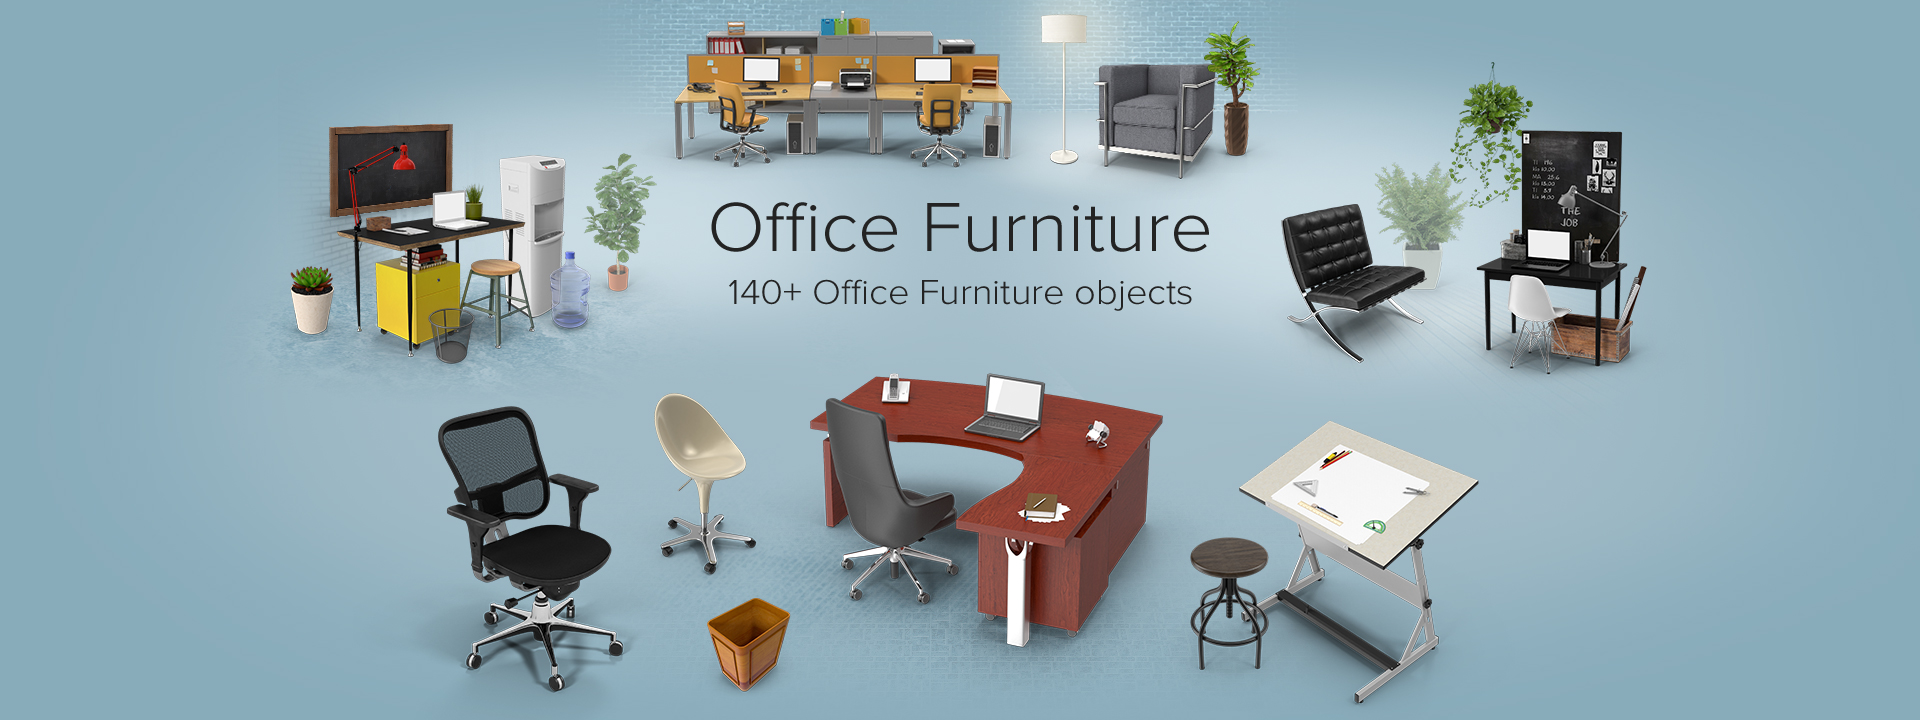 office furniture collection png images psds for download pixelsquid rh pixelsquid com office furniture collection london office furniture collections canada